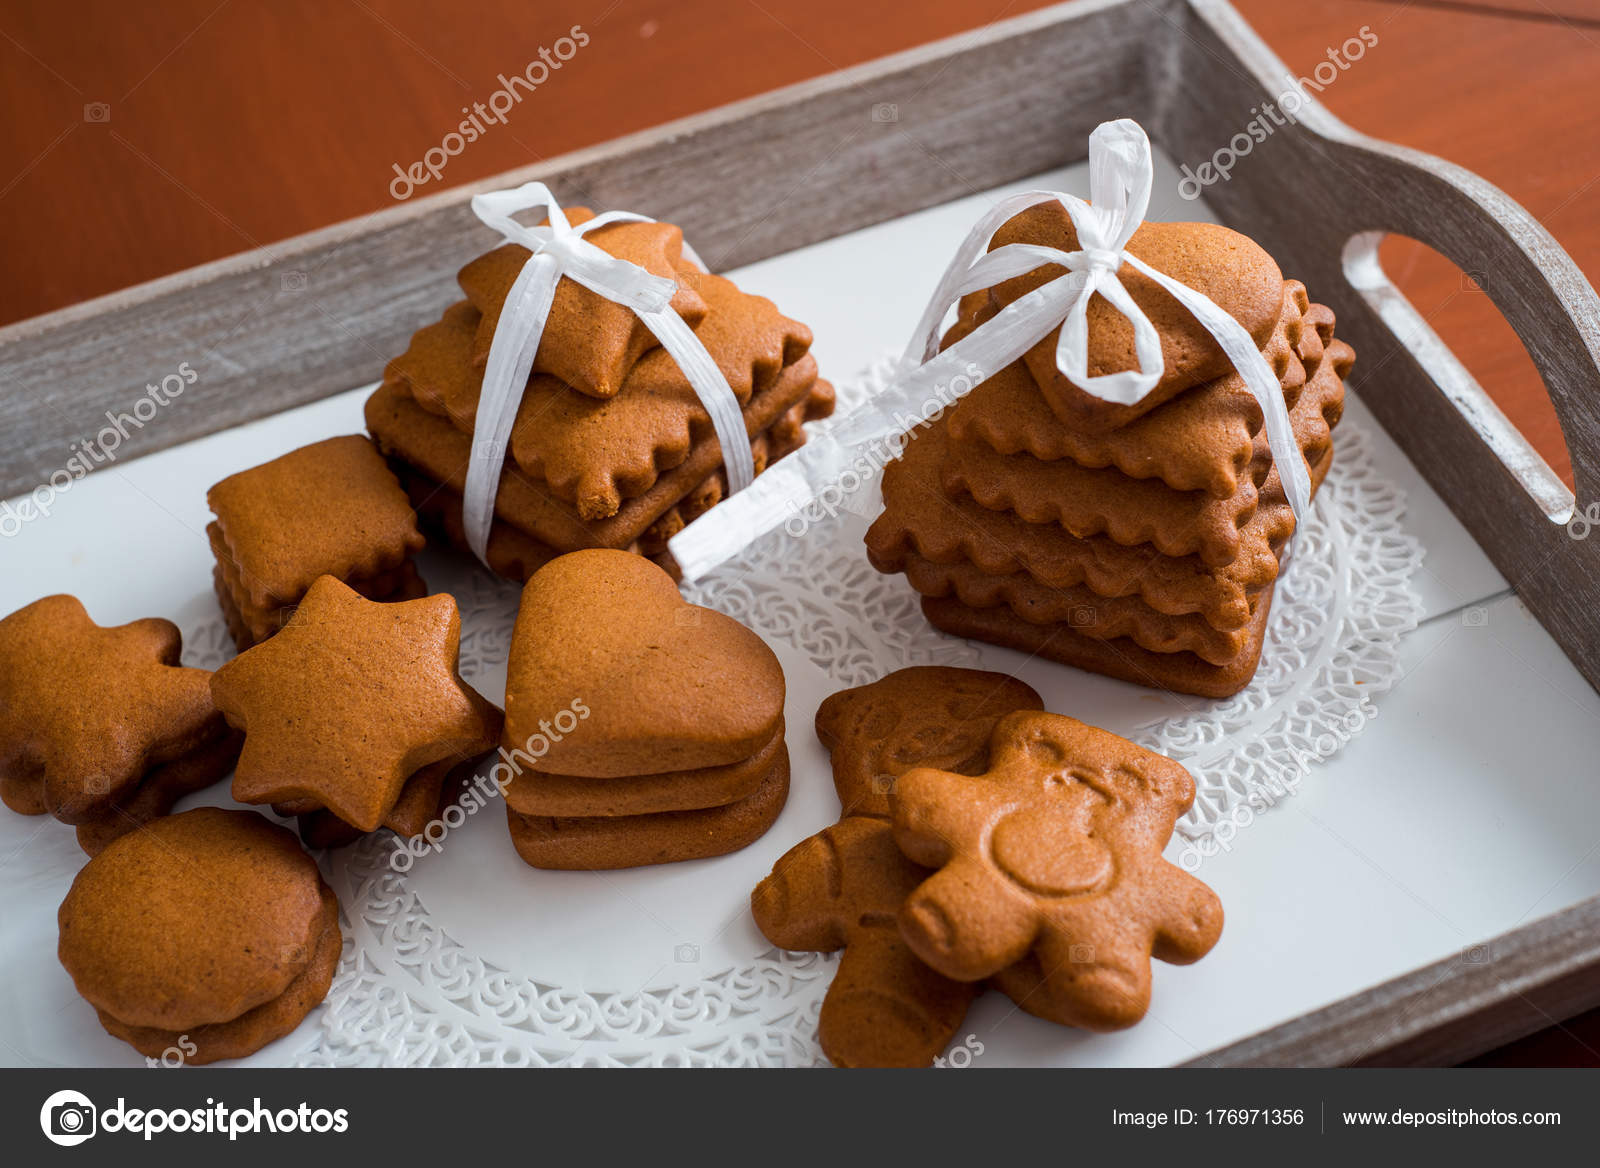 Gingerbread Cookies With Cinnamon A Set Of Gingerbread In The